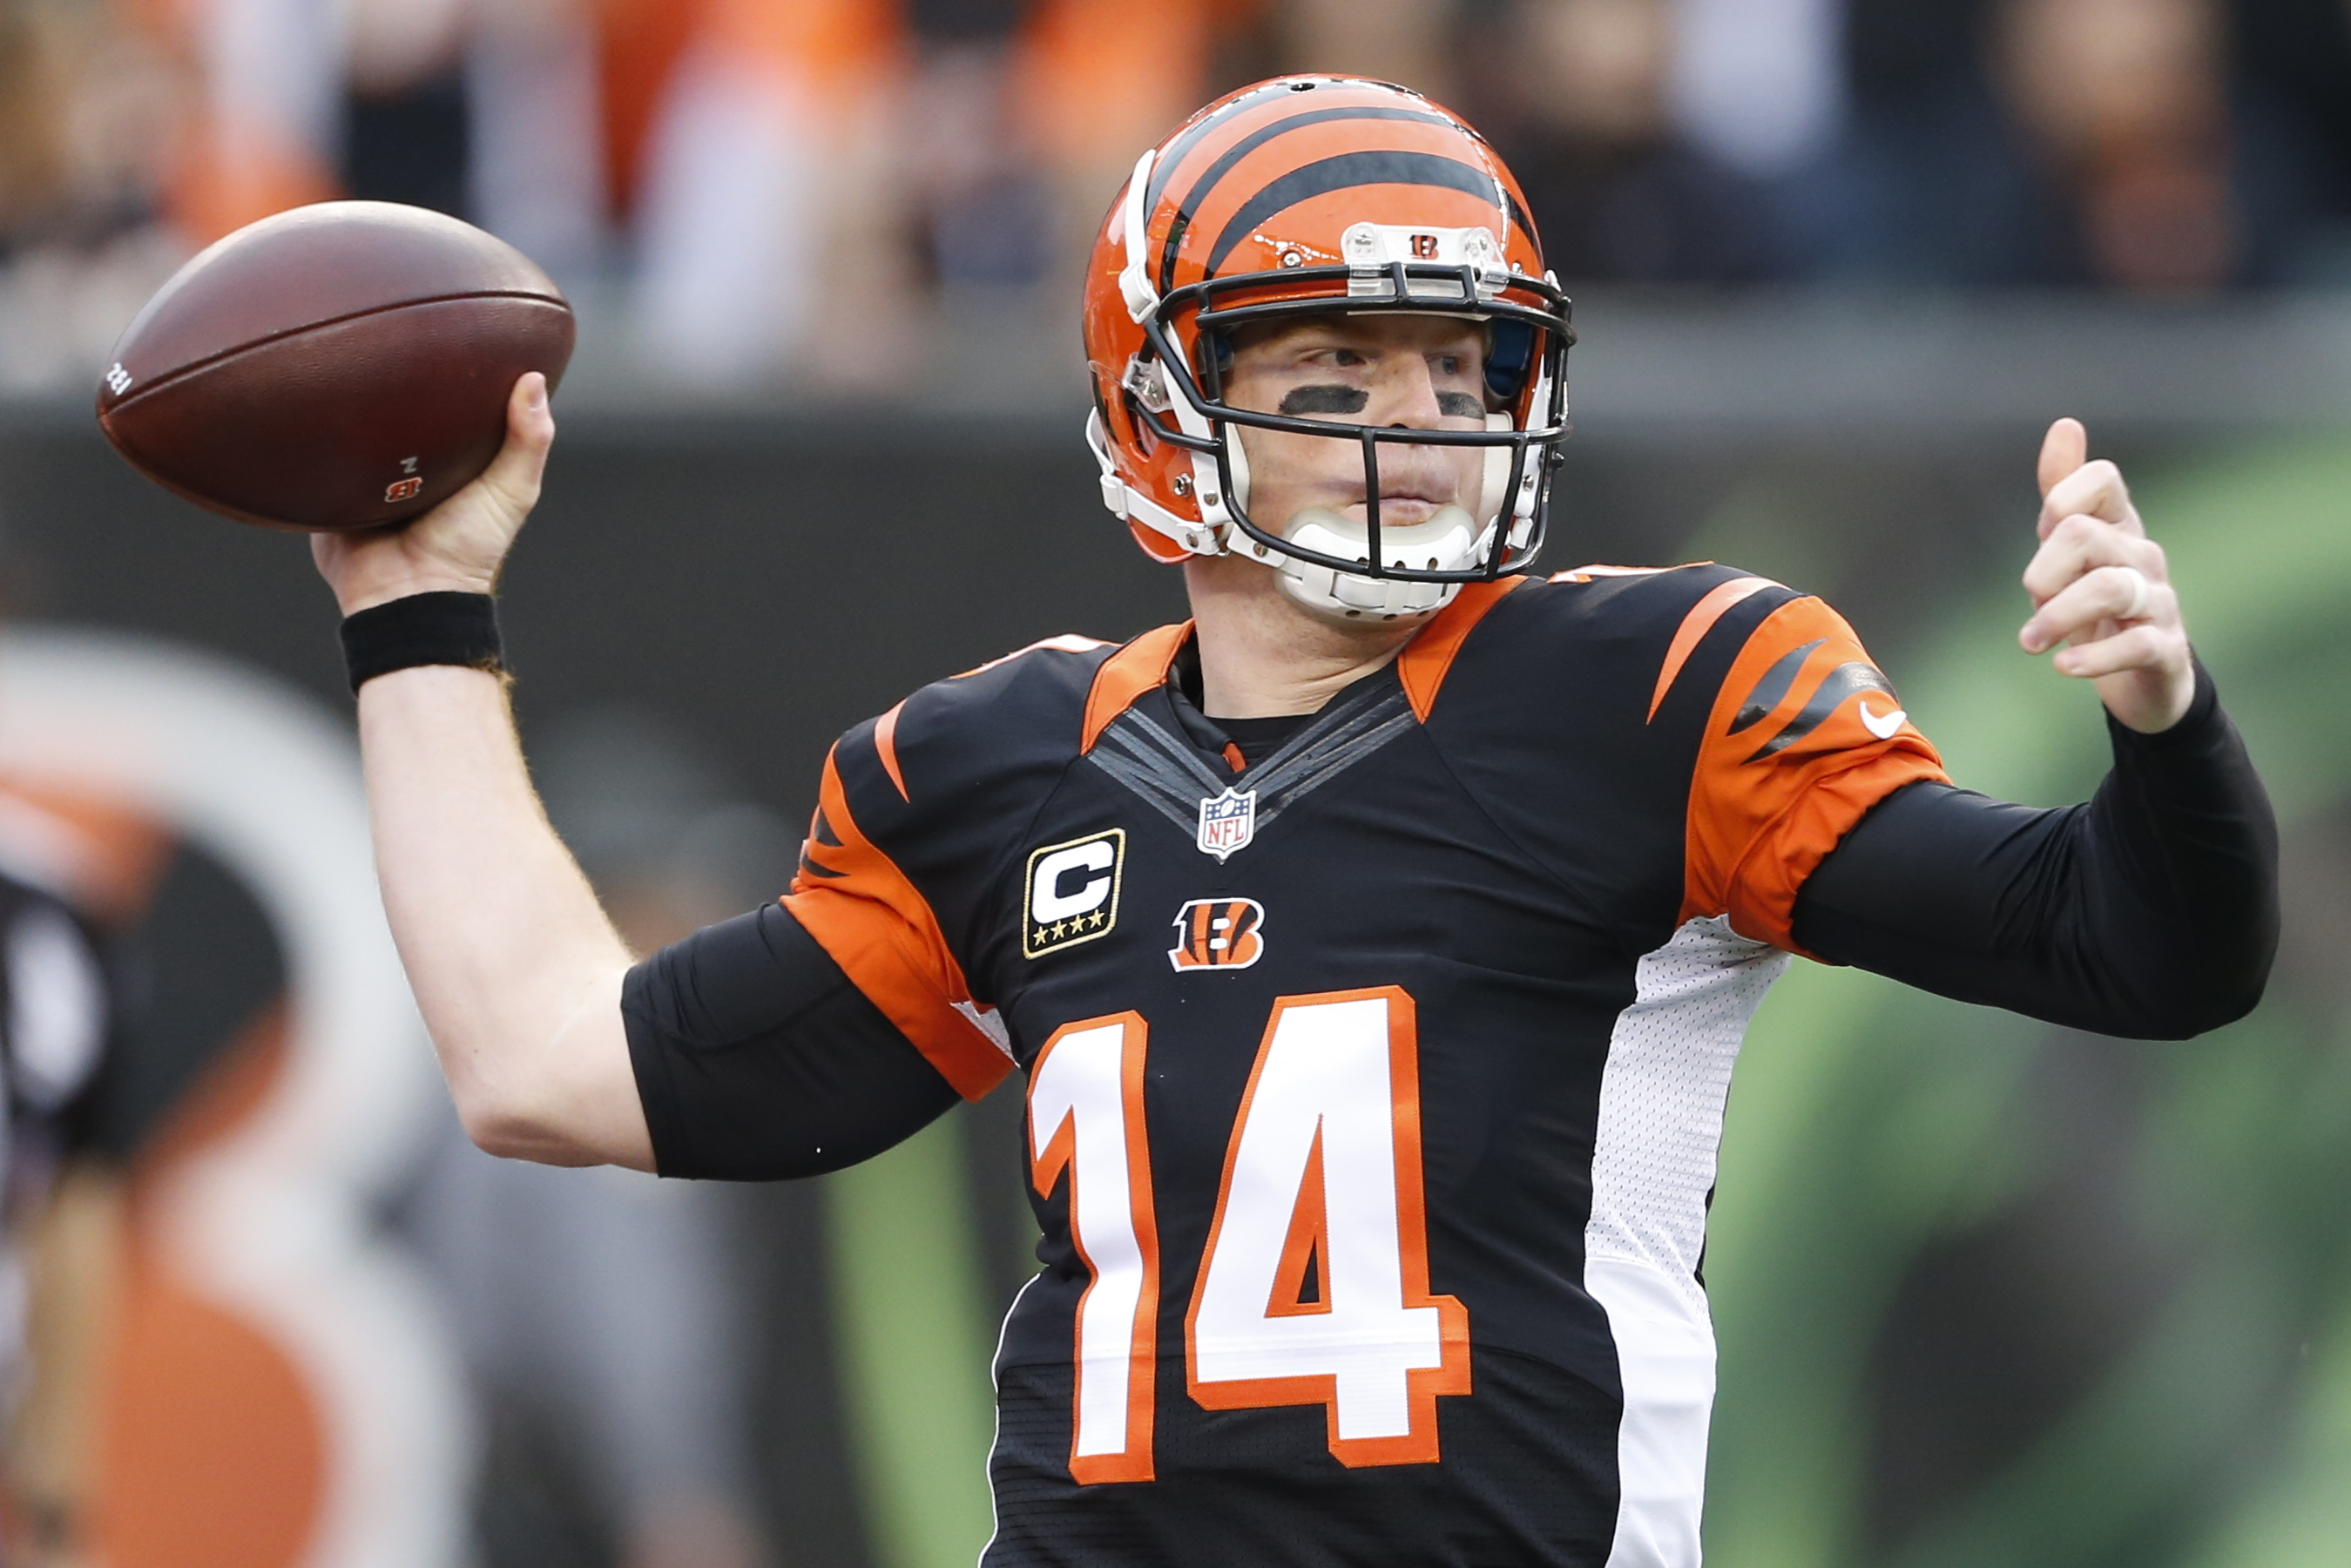 FILE - In this Dec. 13, 2015 file photo, Cincinnati Bengals quarterback Andy Dalton throws in the first half of an NFL football game against the Pittsburgh Steelers in Cincinnati. A broken thumb on his passing hand forced Andy Dalton to miss the end of an